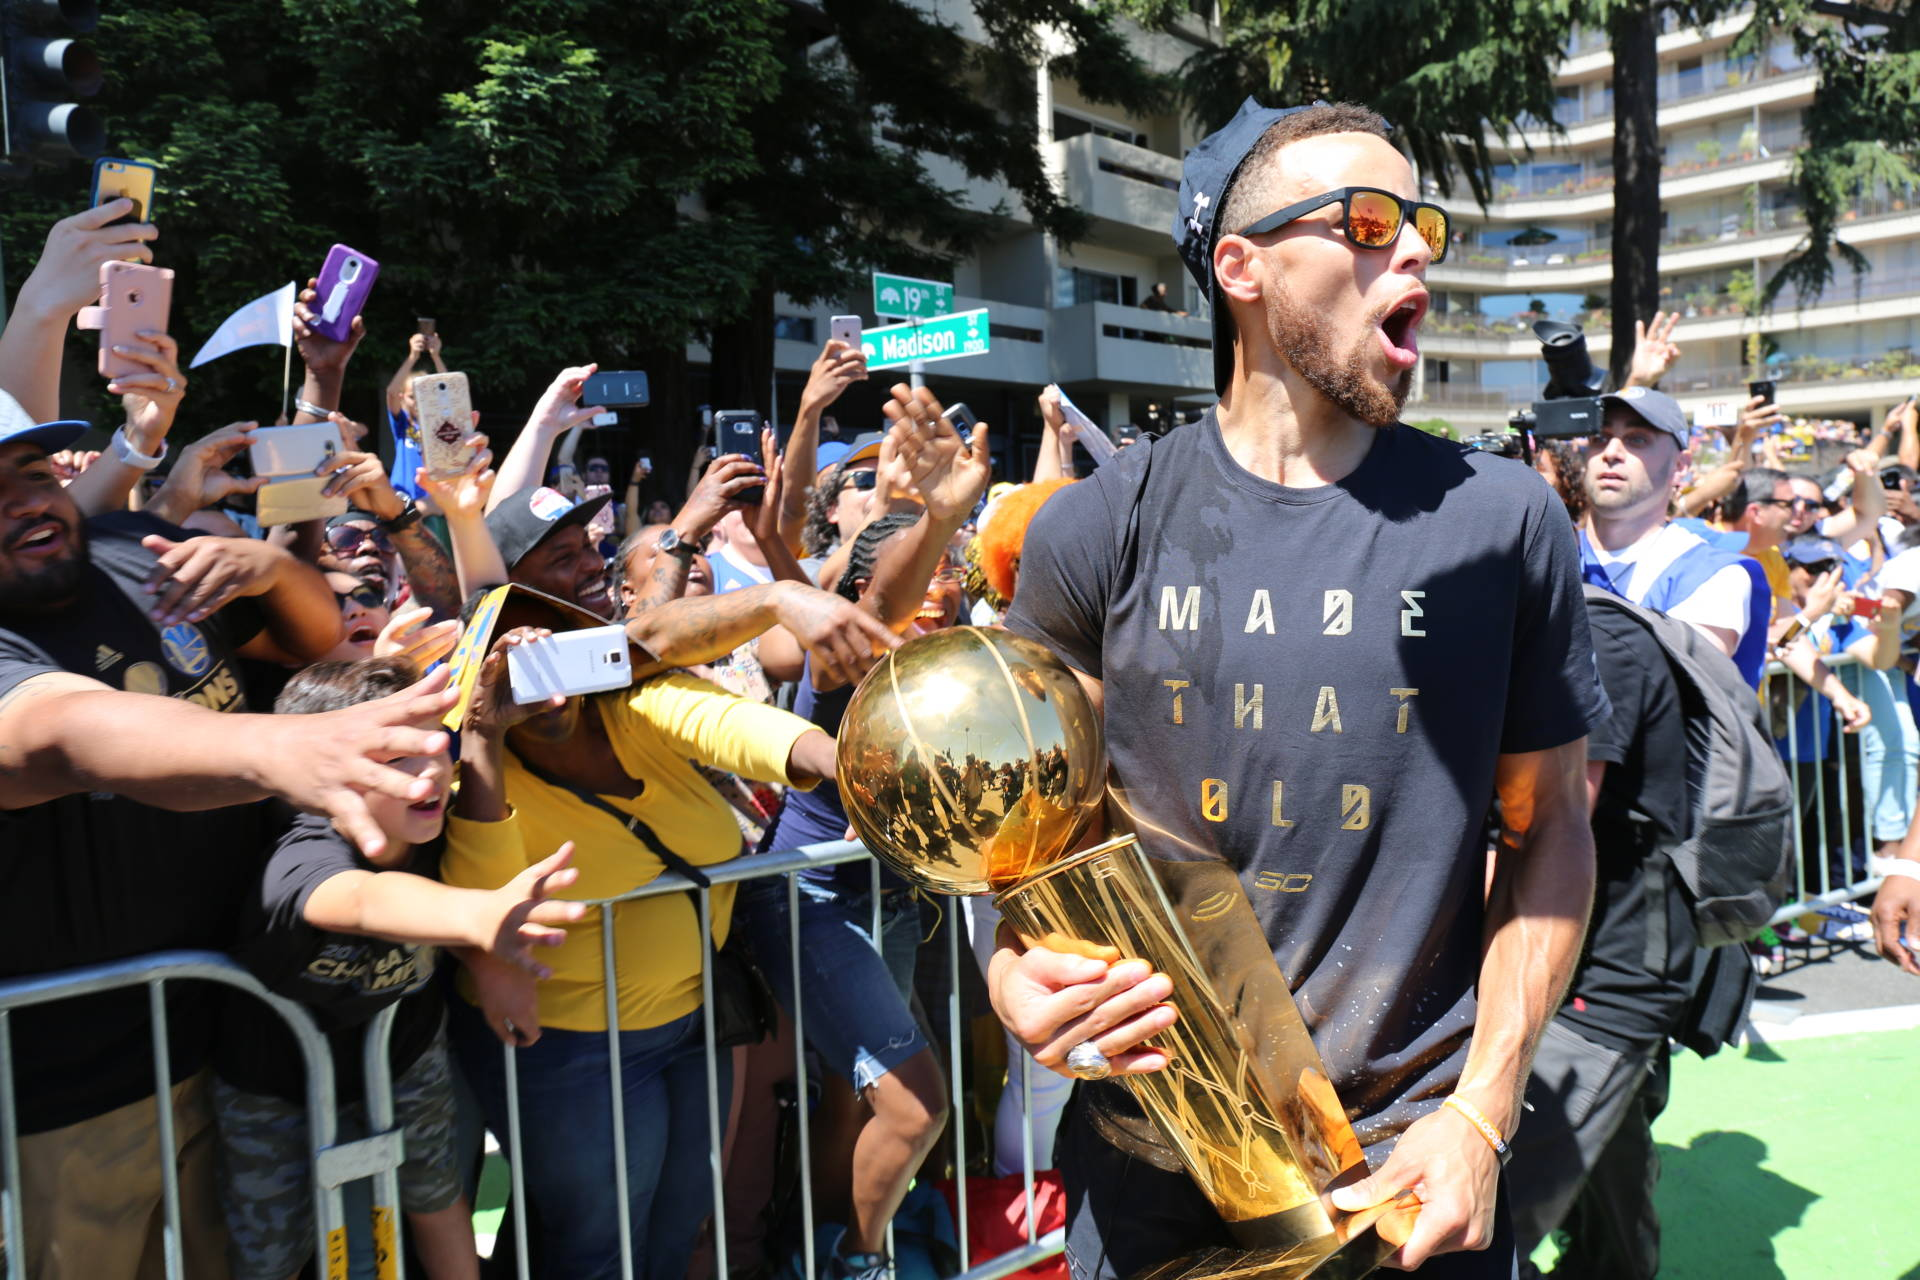 Stephen Curry brings the NBA Championship trophy to the people during the Warriors parade in Oakland on June 15, 2017. Adam Grossberg/KQED